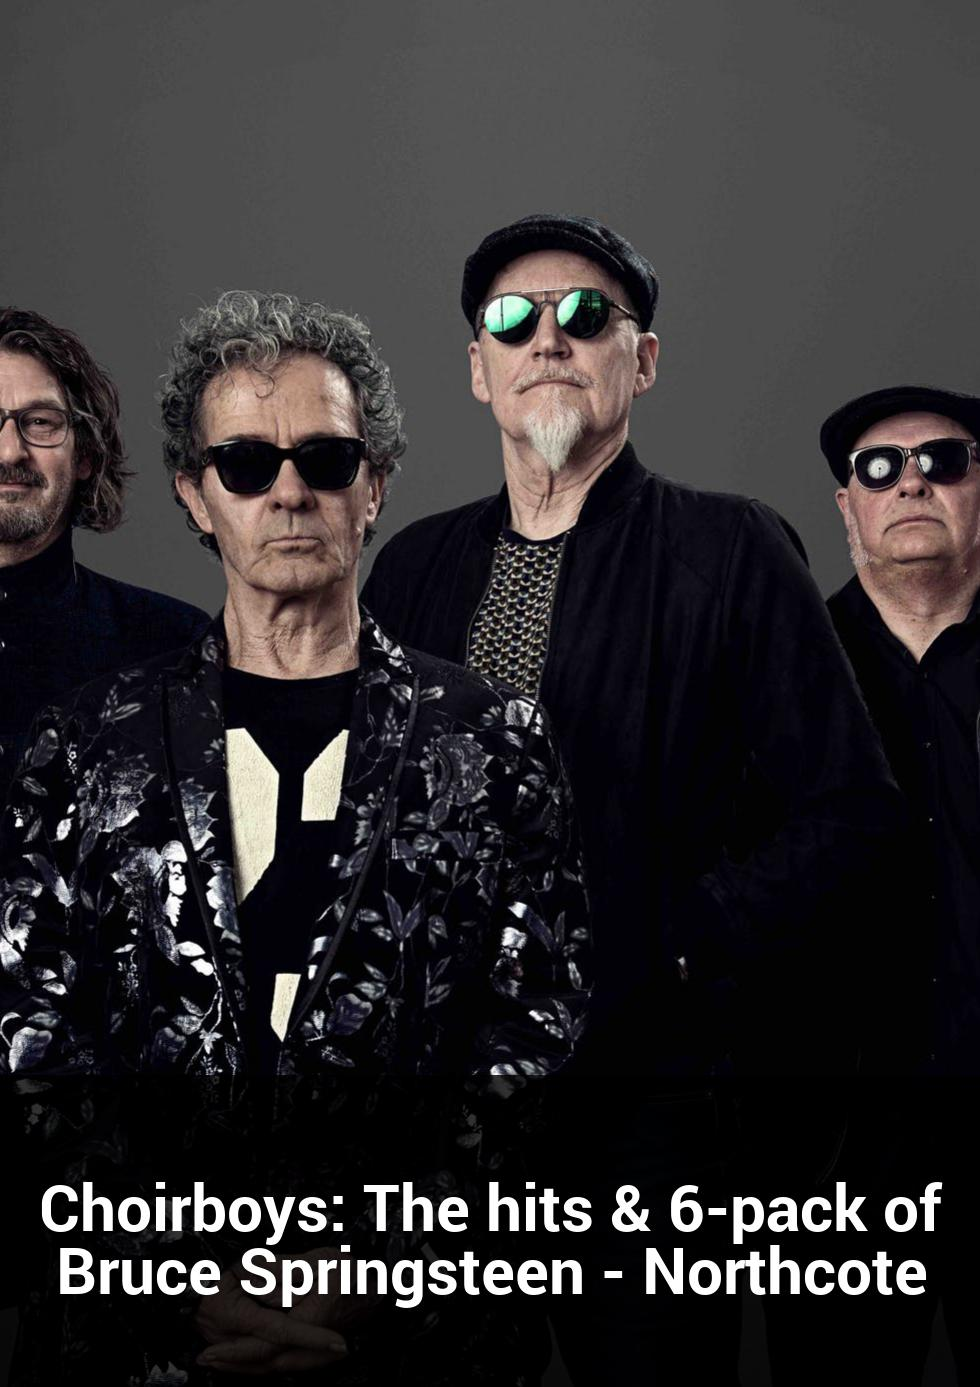 Choirboys: The hits & 6-pack of Bruce Springsteen - Northcote at Northcote Social Club